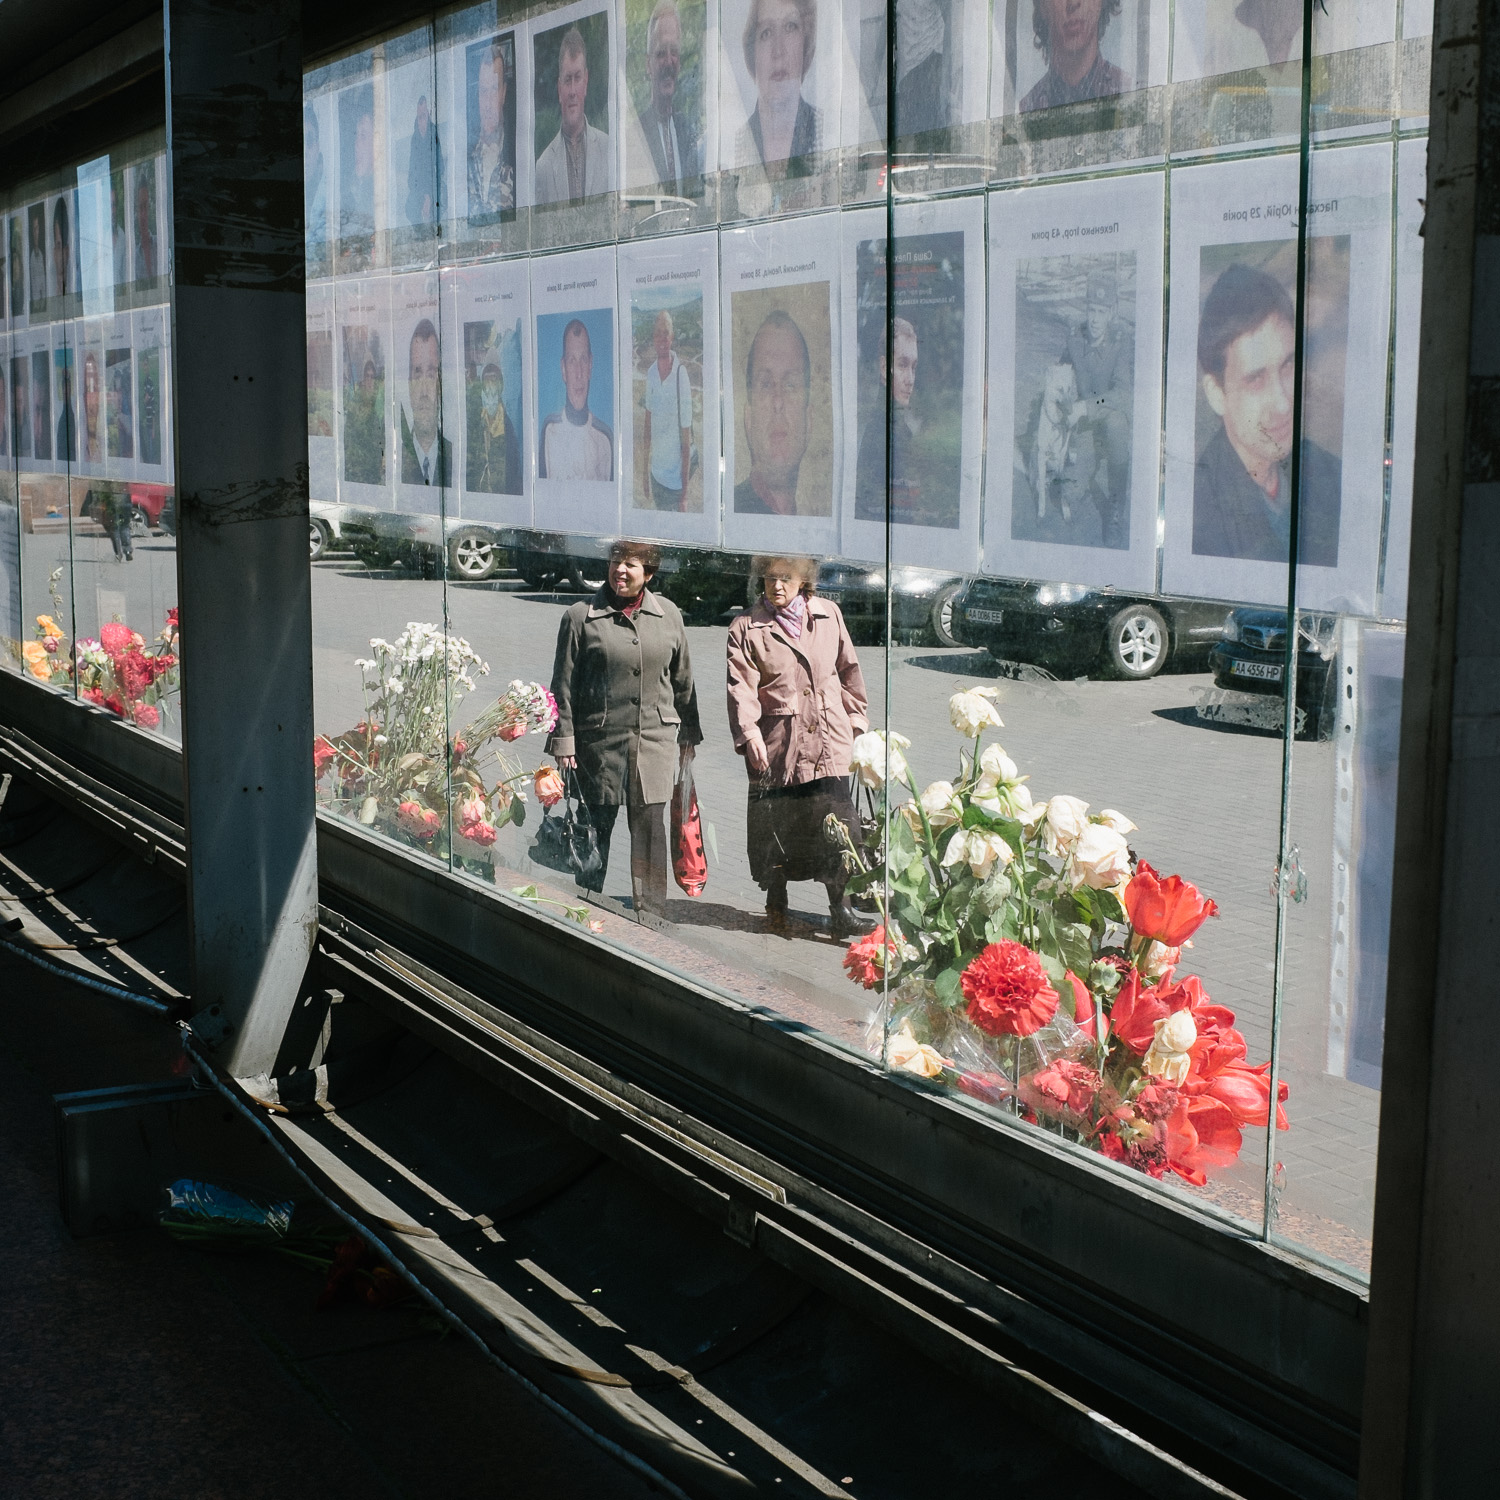 Women walk past a display of pictures of those killed in Ukraine's Euromaidan protests, April 2014.